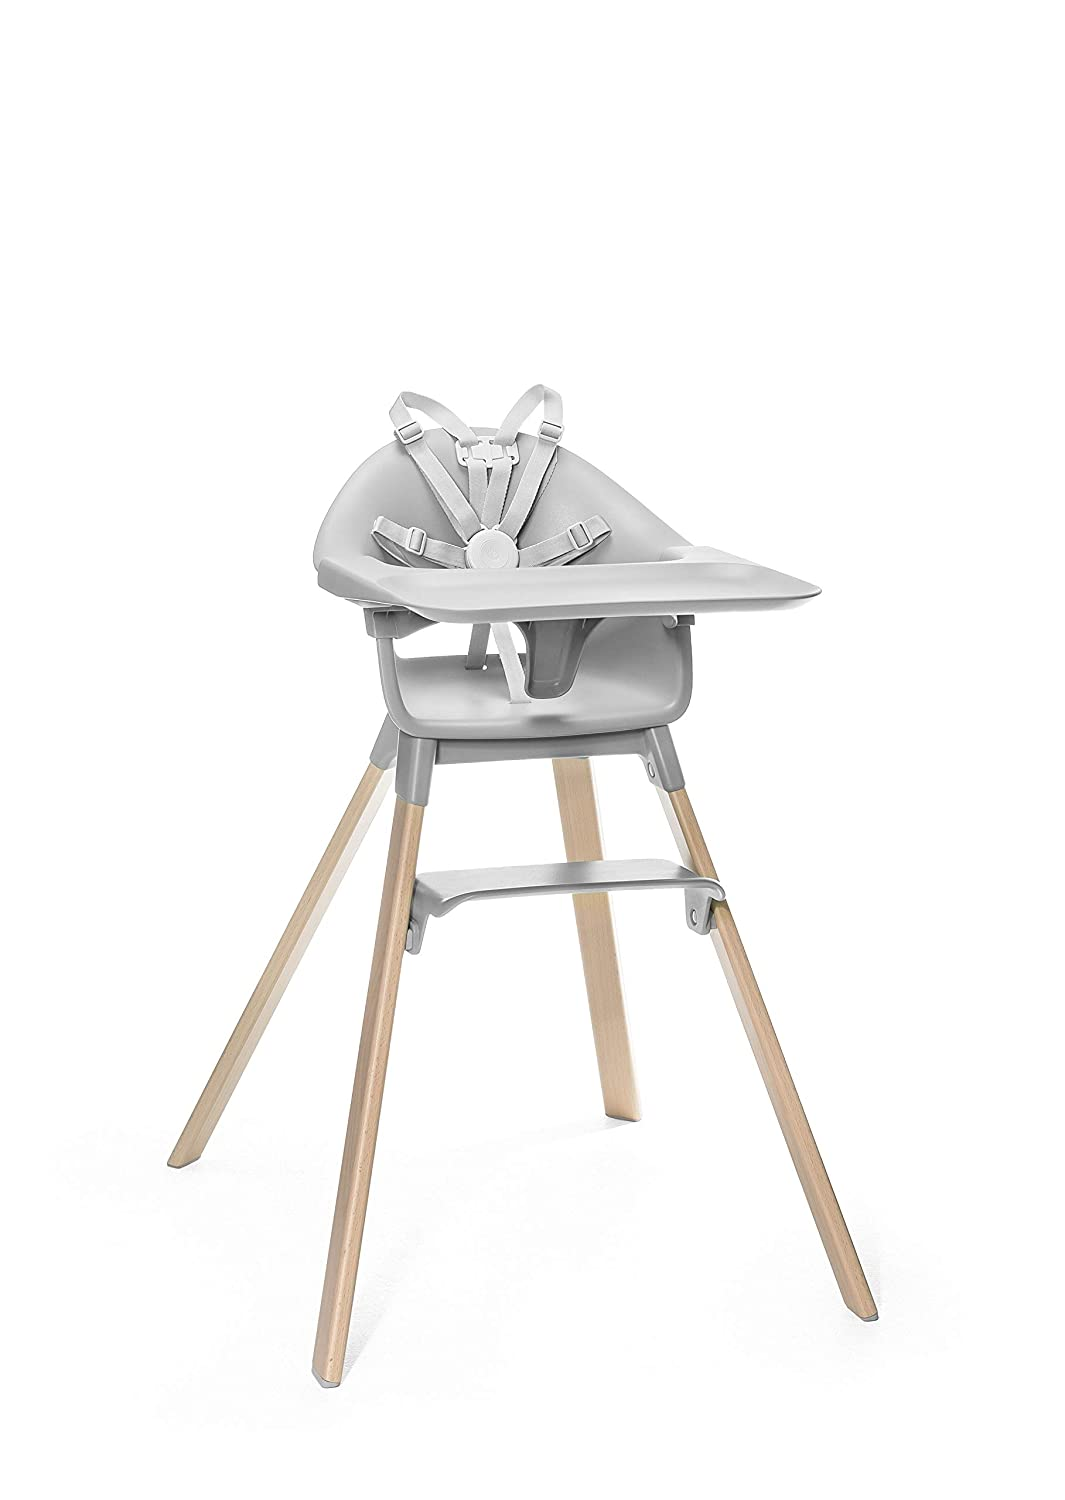 Adjustable Grow-Along Chair for Children with Tray and Safety Harness Colour: Cloud Grey Stokke Clikk High Chair Suitable from 6 Months to 3 Years